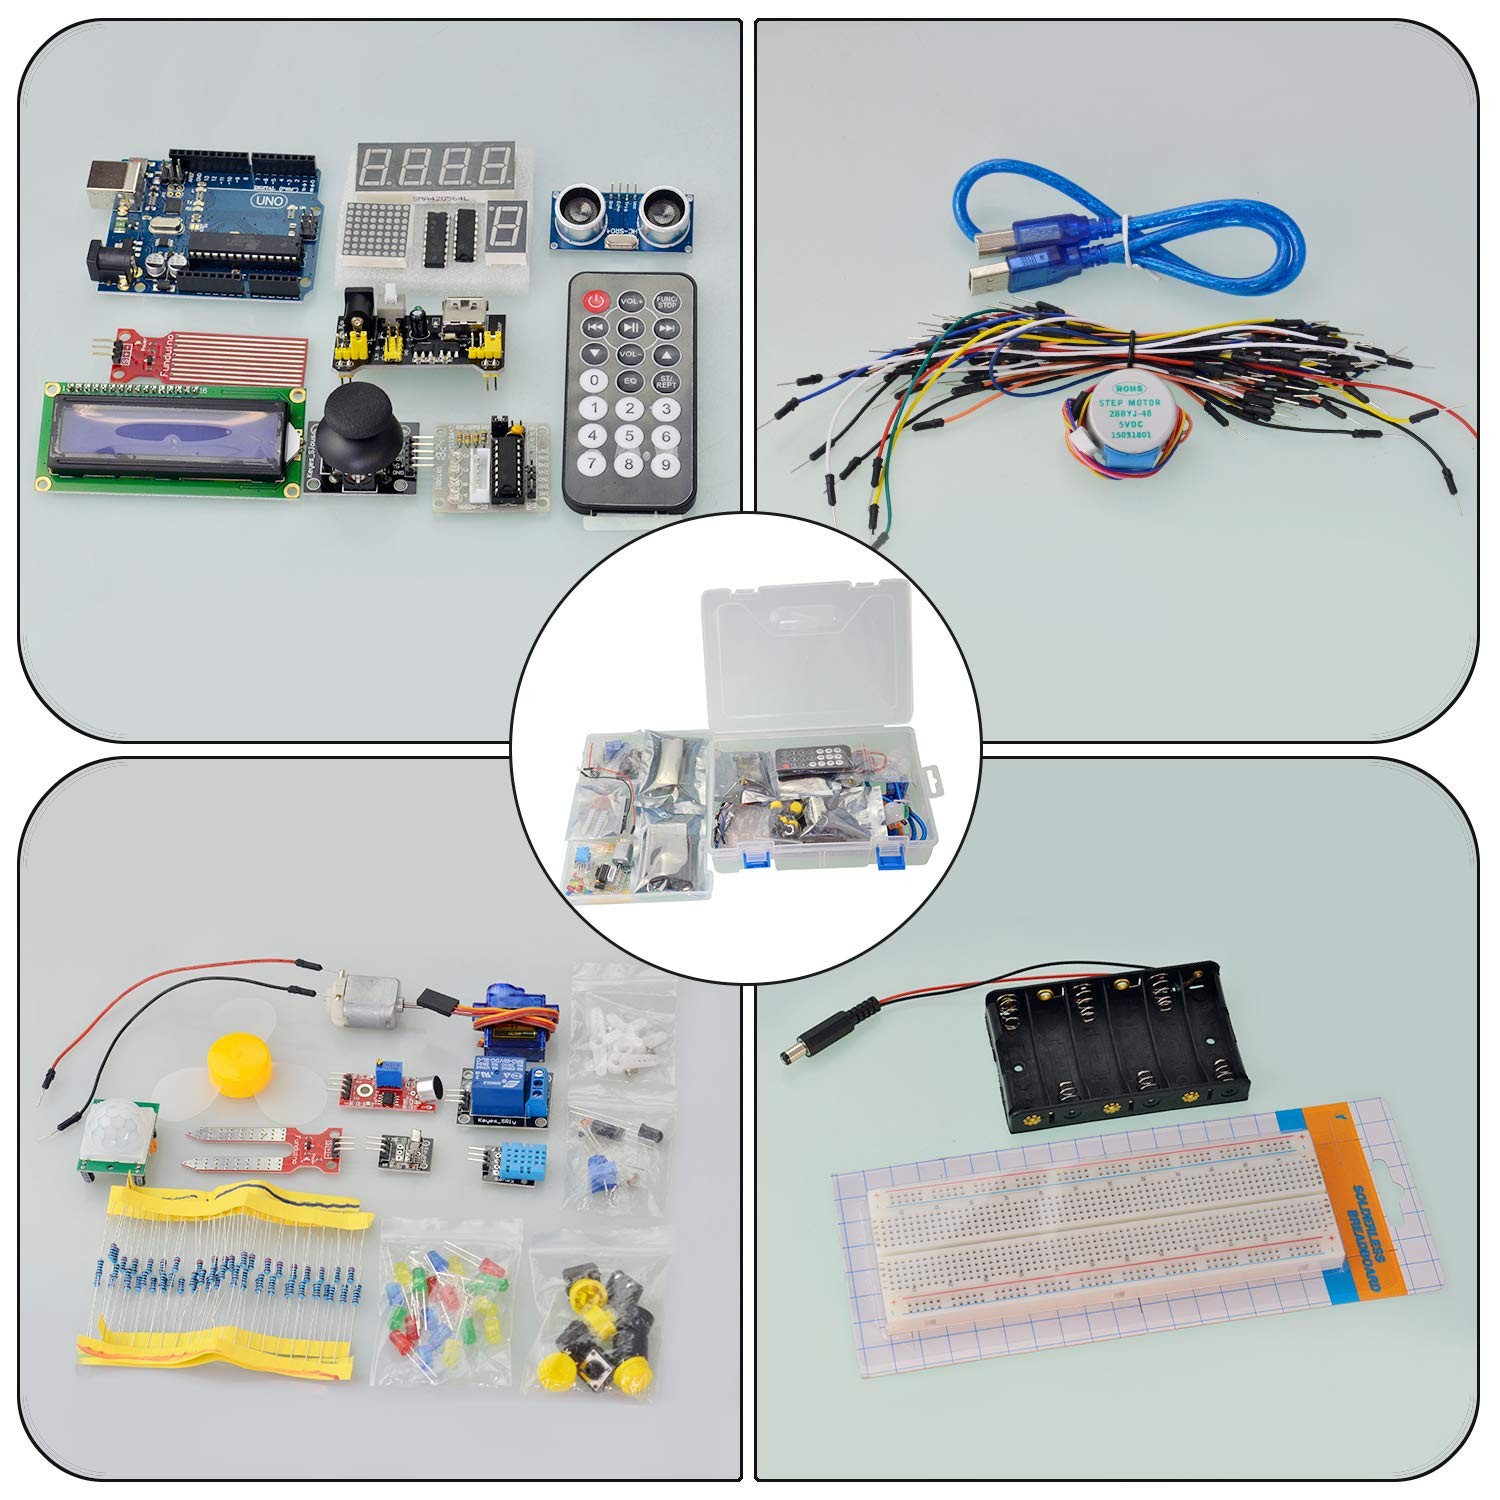 Seesii Uno R3 Super Starter Kit For Arduino With 140 Pieces Basic Electrical Wiring Free Pdf Practical Components